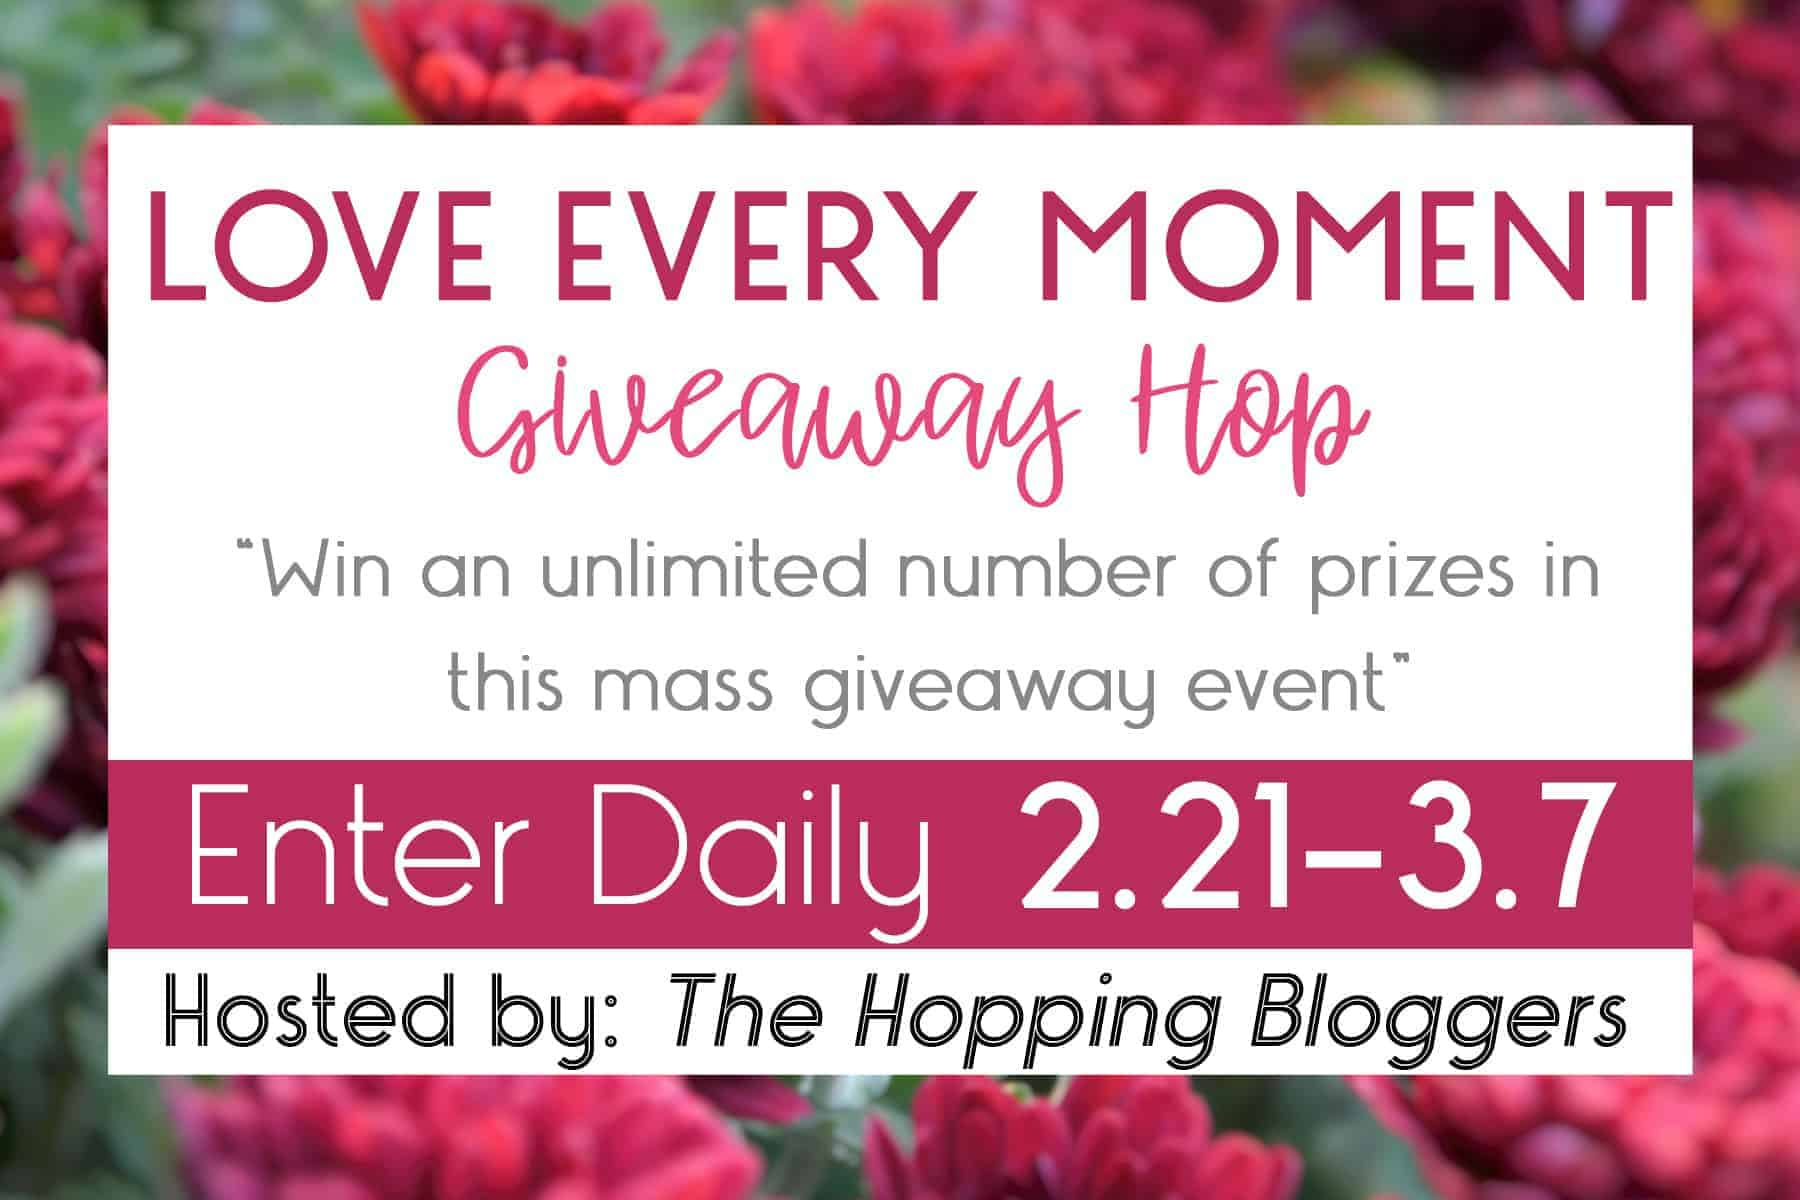 Love Every Moment Giveaway Hop 2018